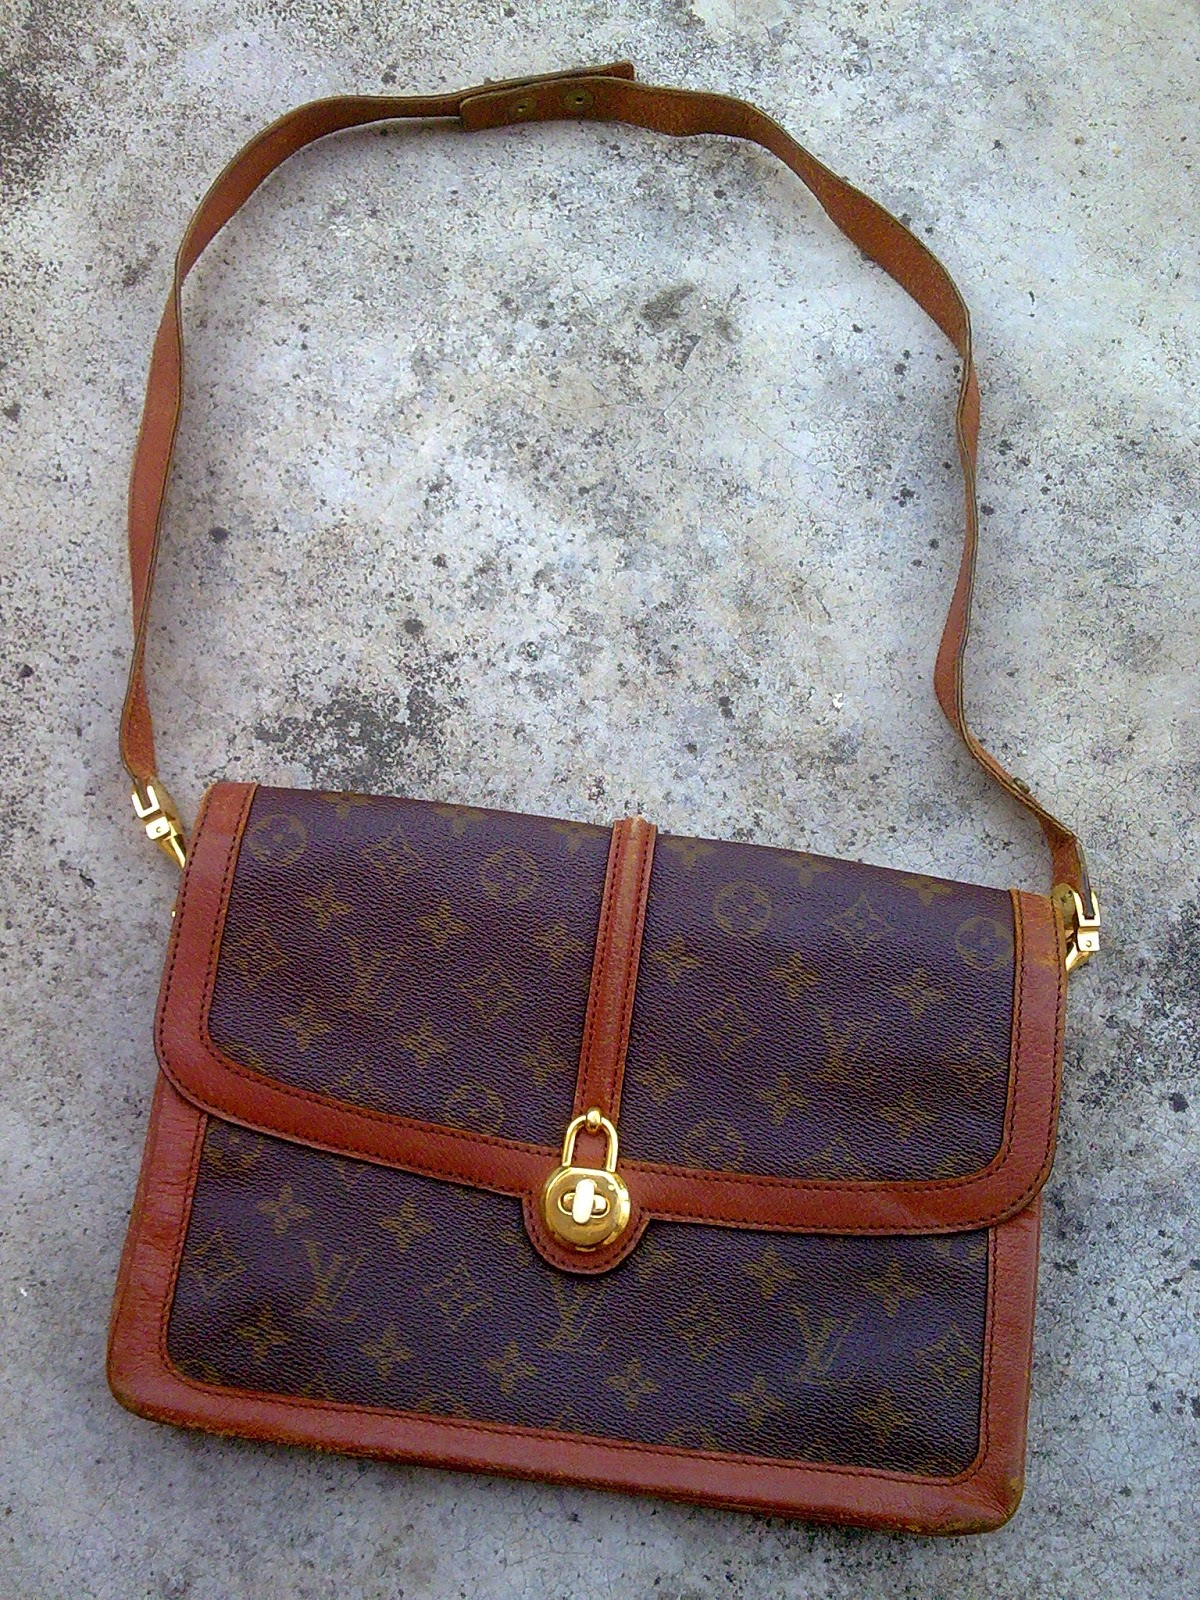 d0rayakeebag authentic louis vuitton vtg monogram raspail shoulder bag. Black Bedroom Furniture Sets. Home Design Ideas